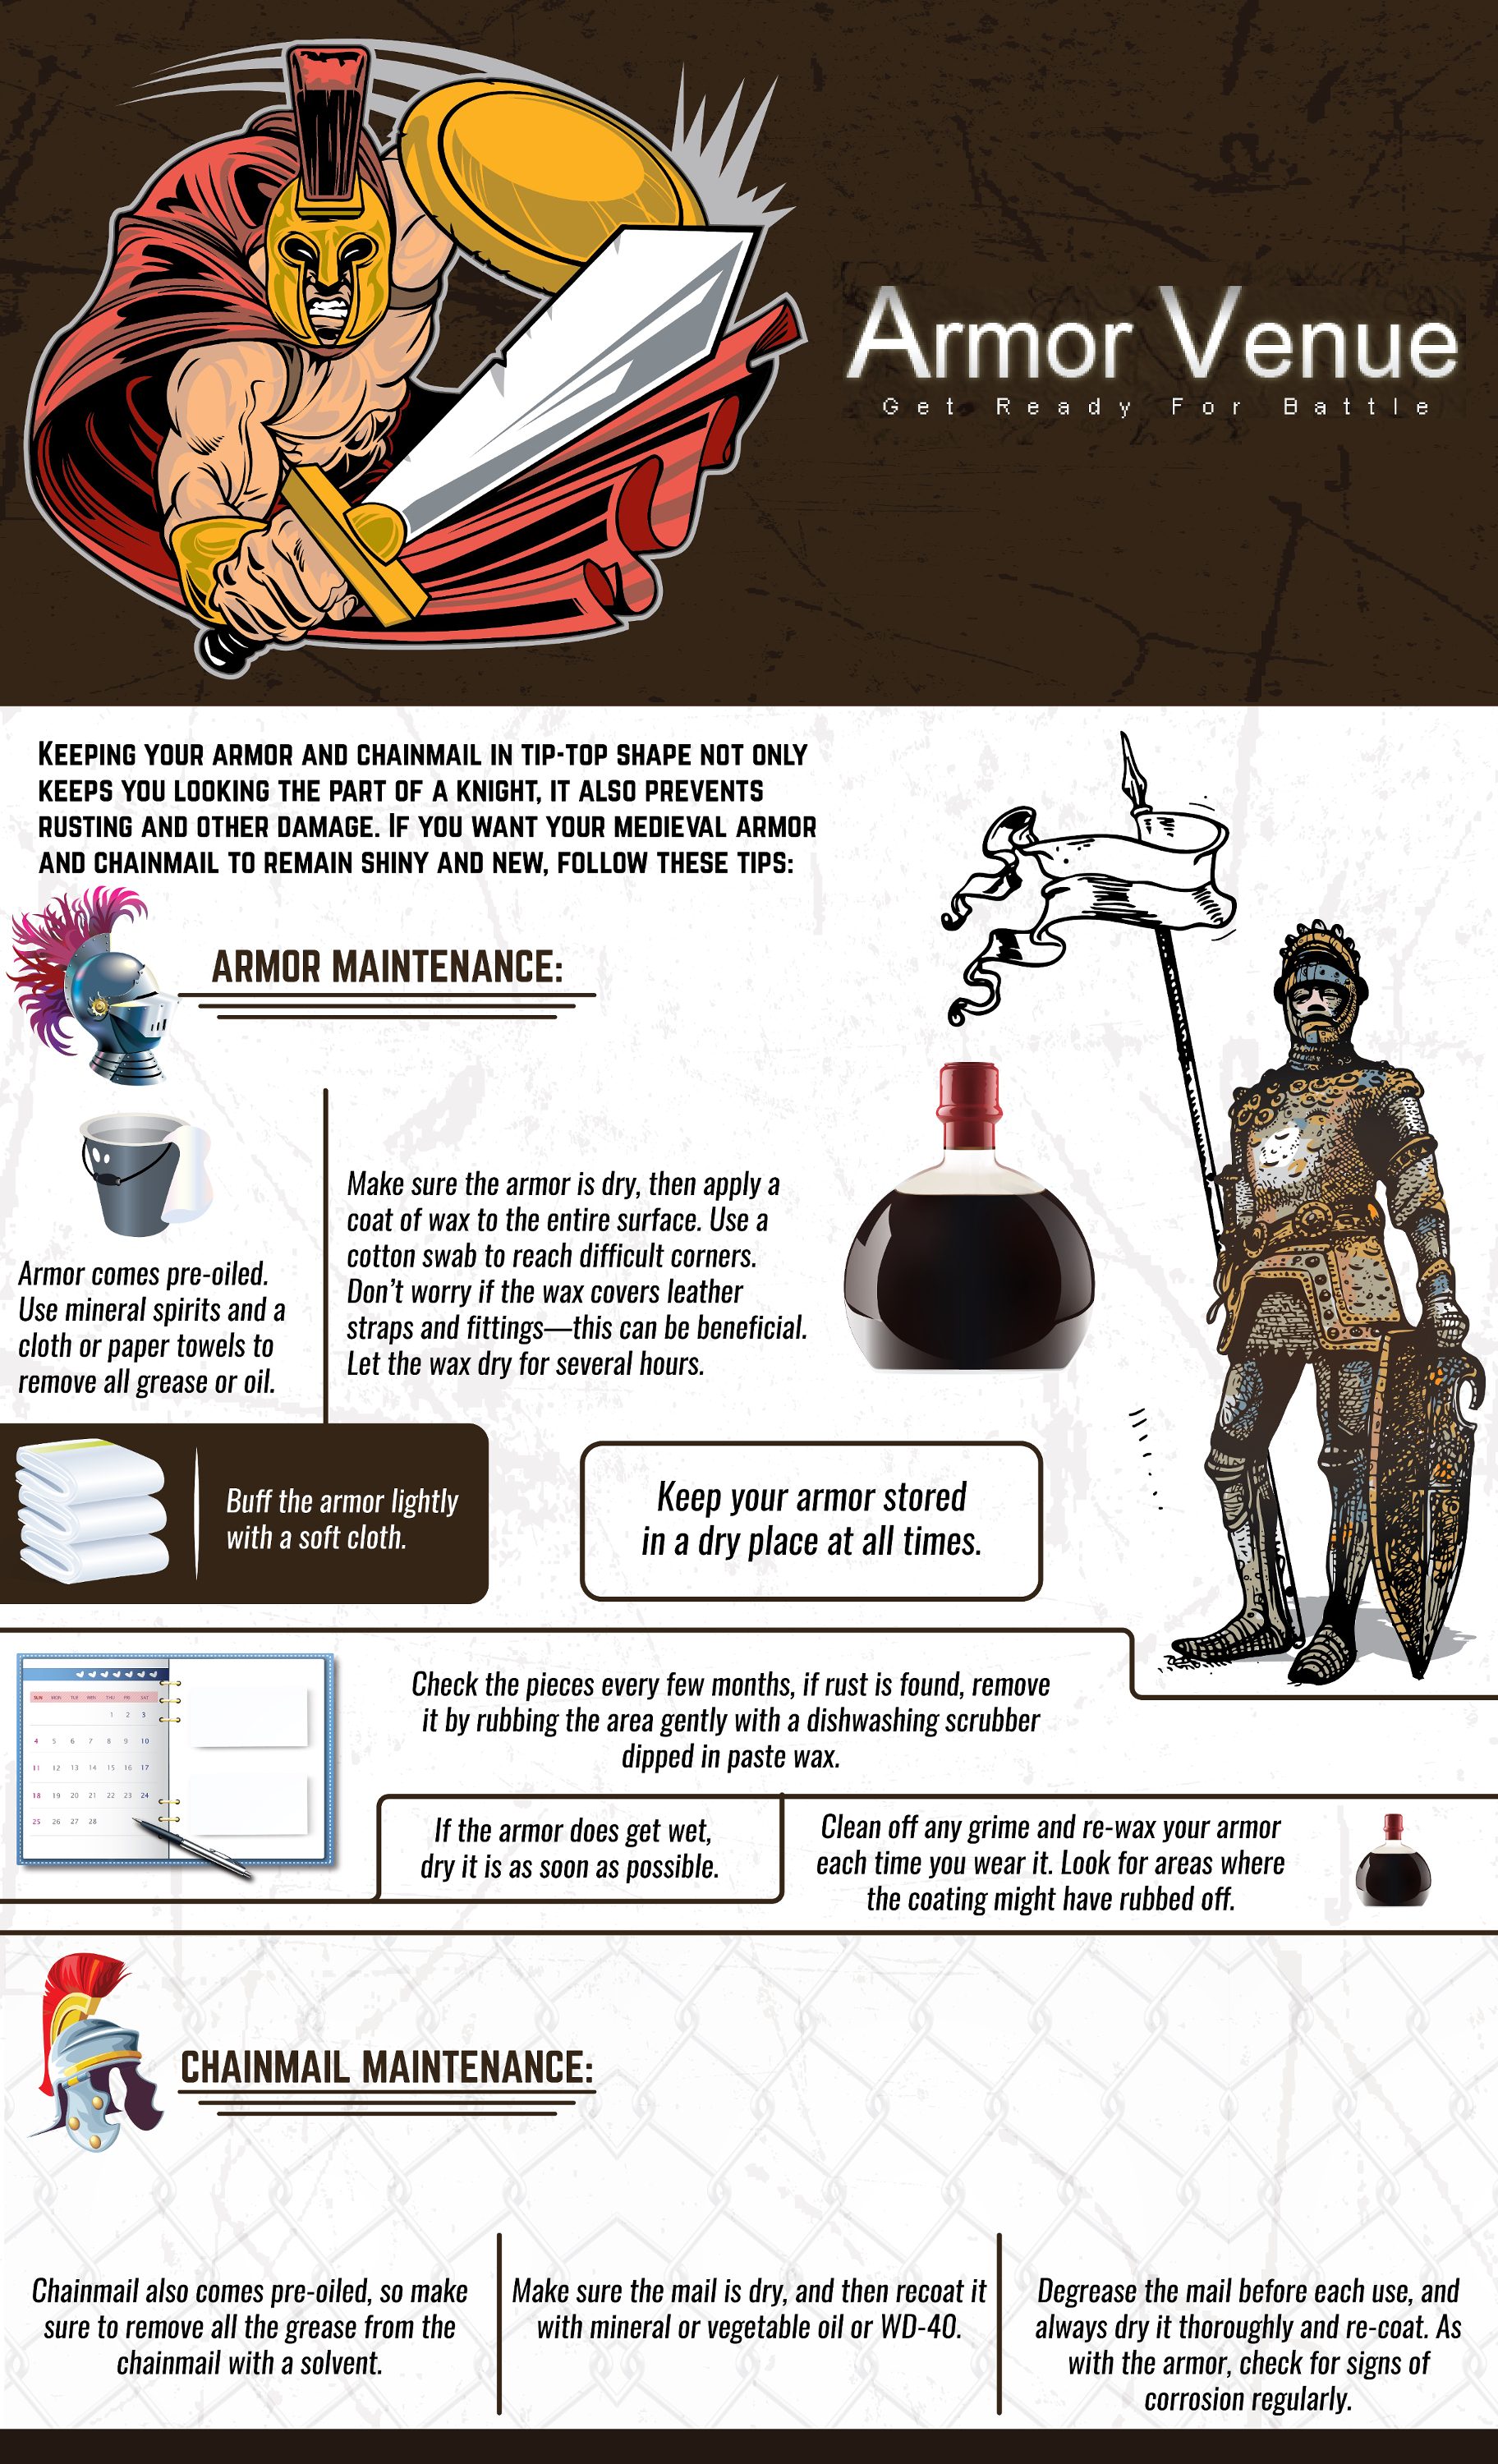 Follow these easy instructions and tips to keep your armor and chainmail preserved for years to come!